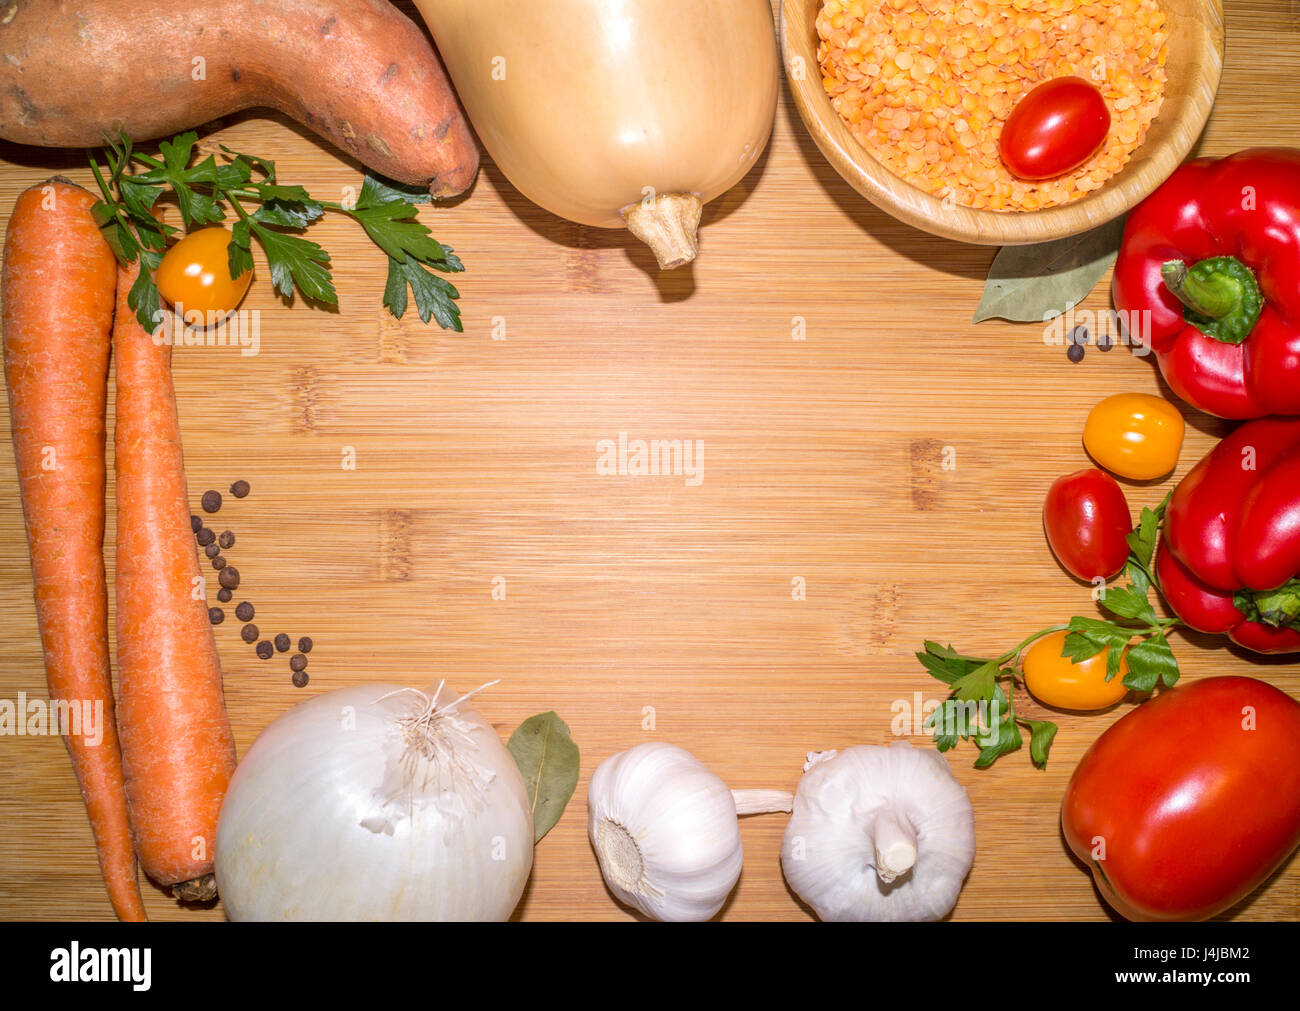 ingredients for lentil soup on a wooden board with copy space in the center Stock Photo